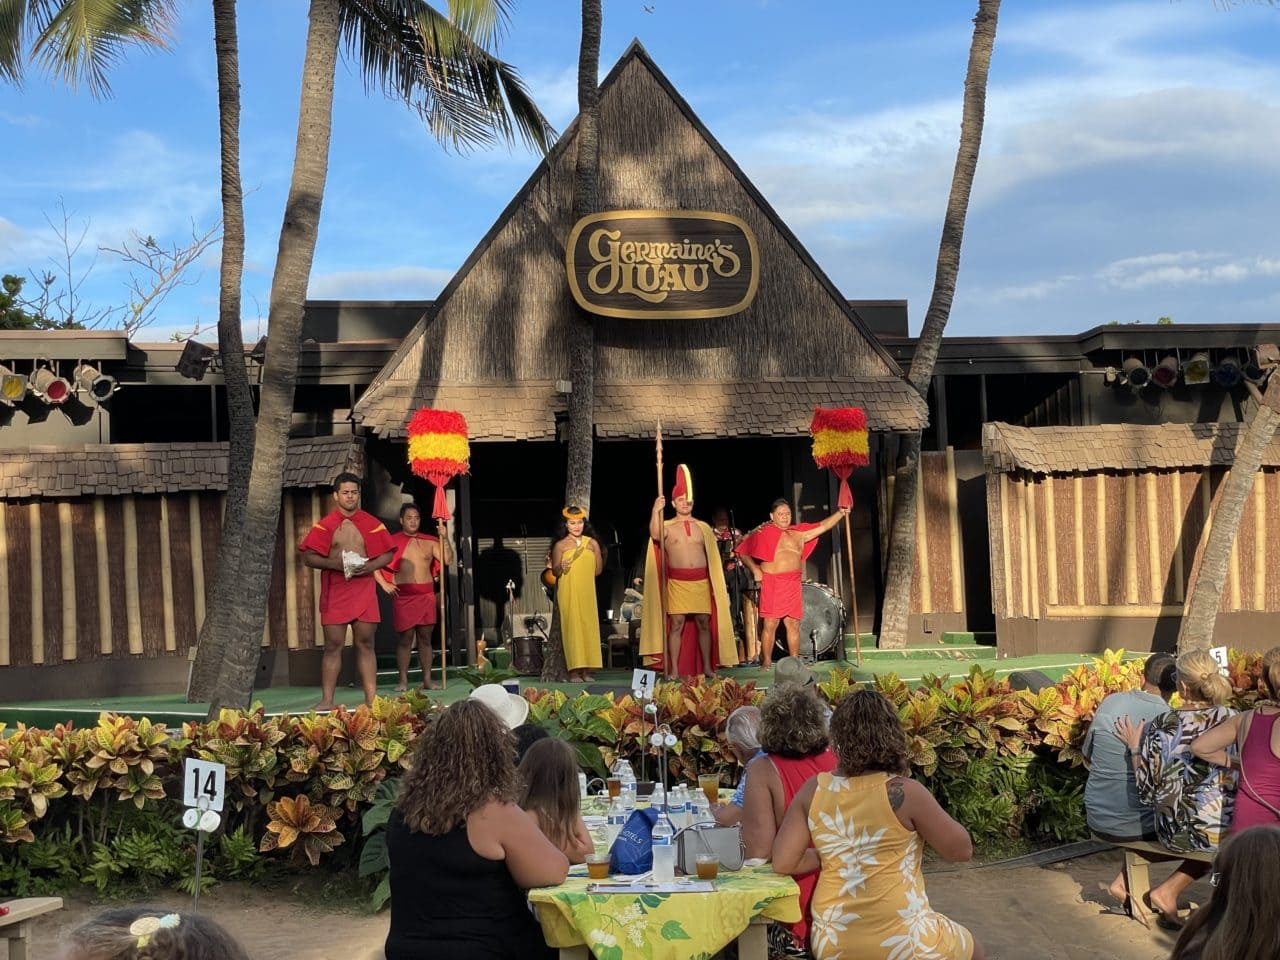 A group watches a luau in Hawaii